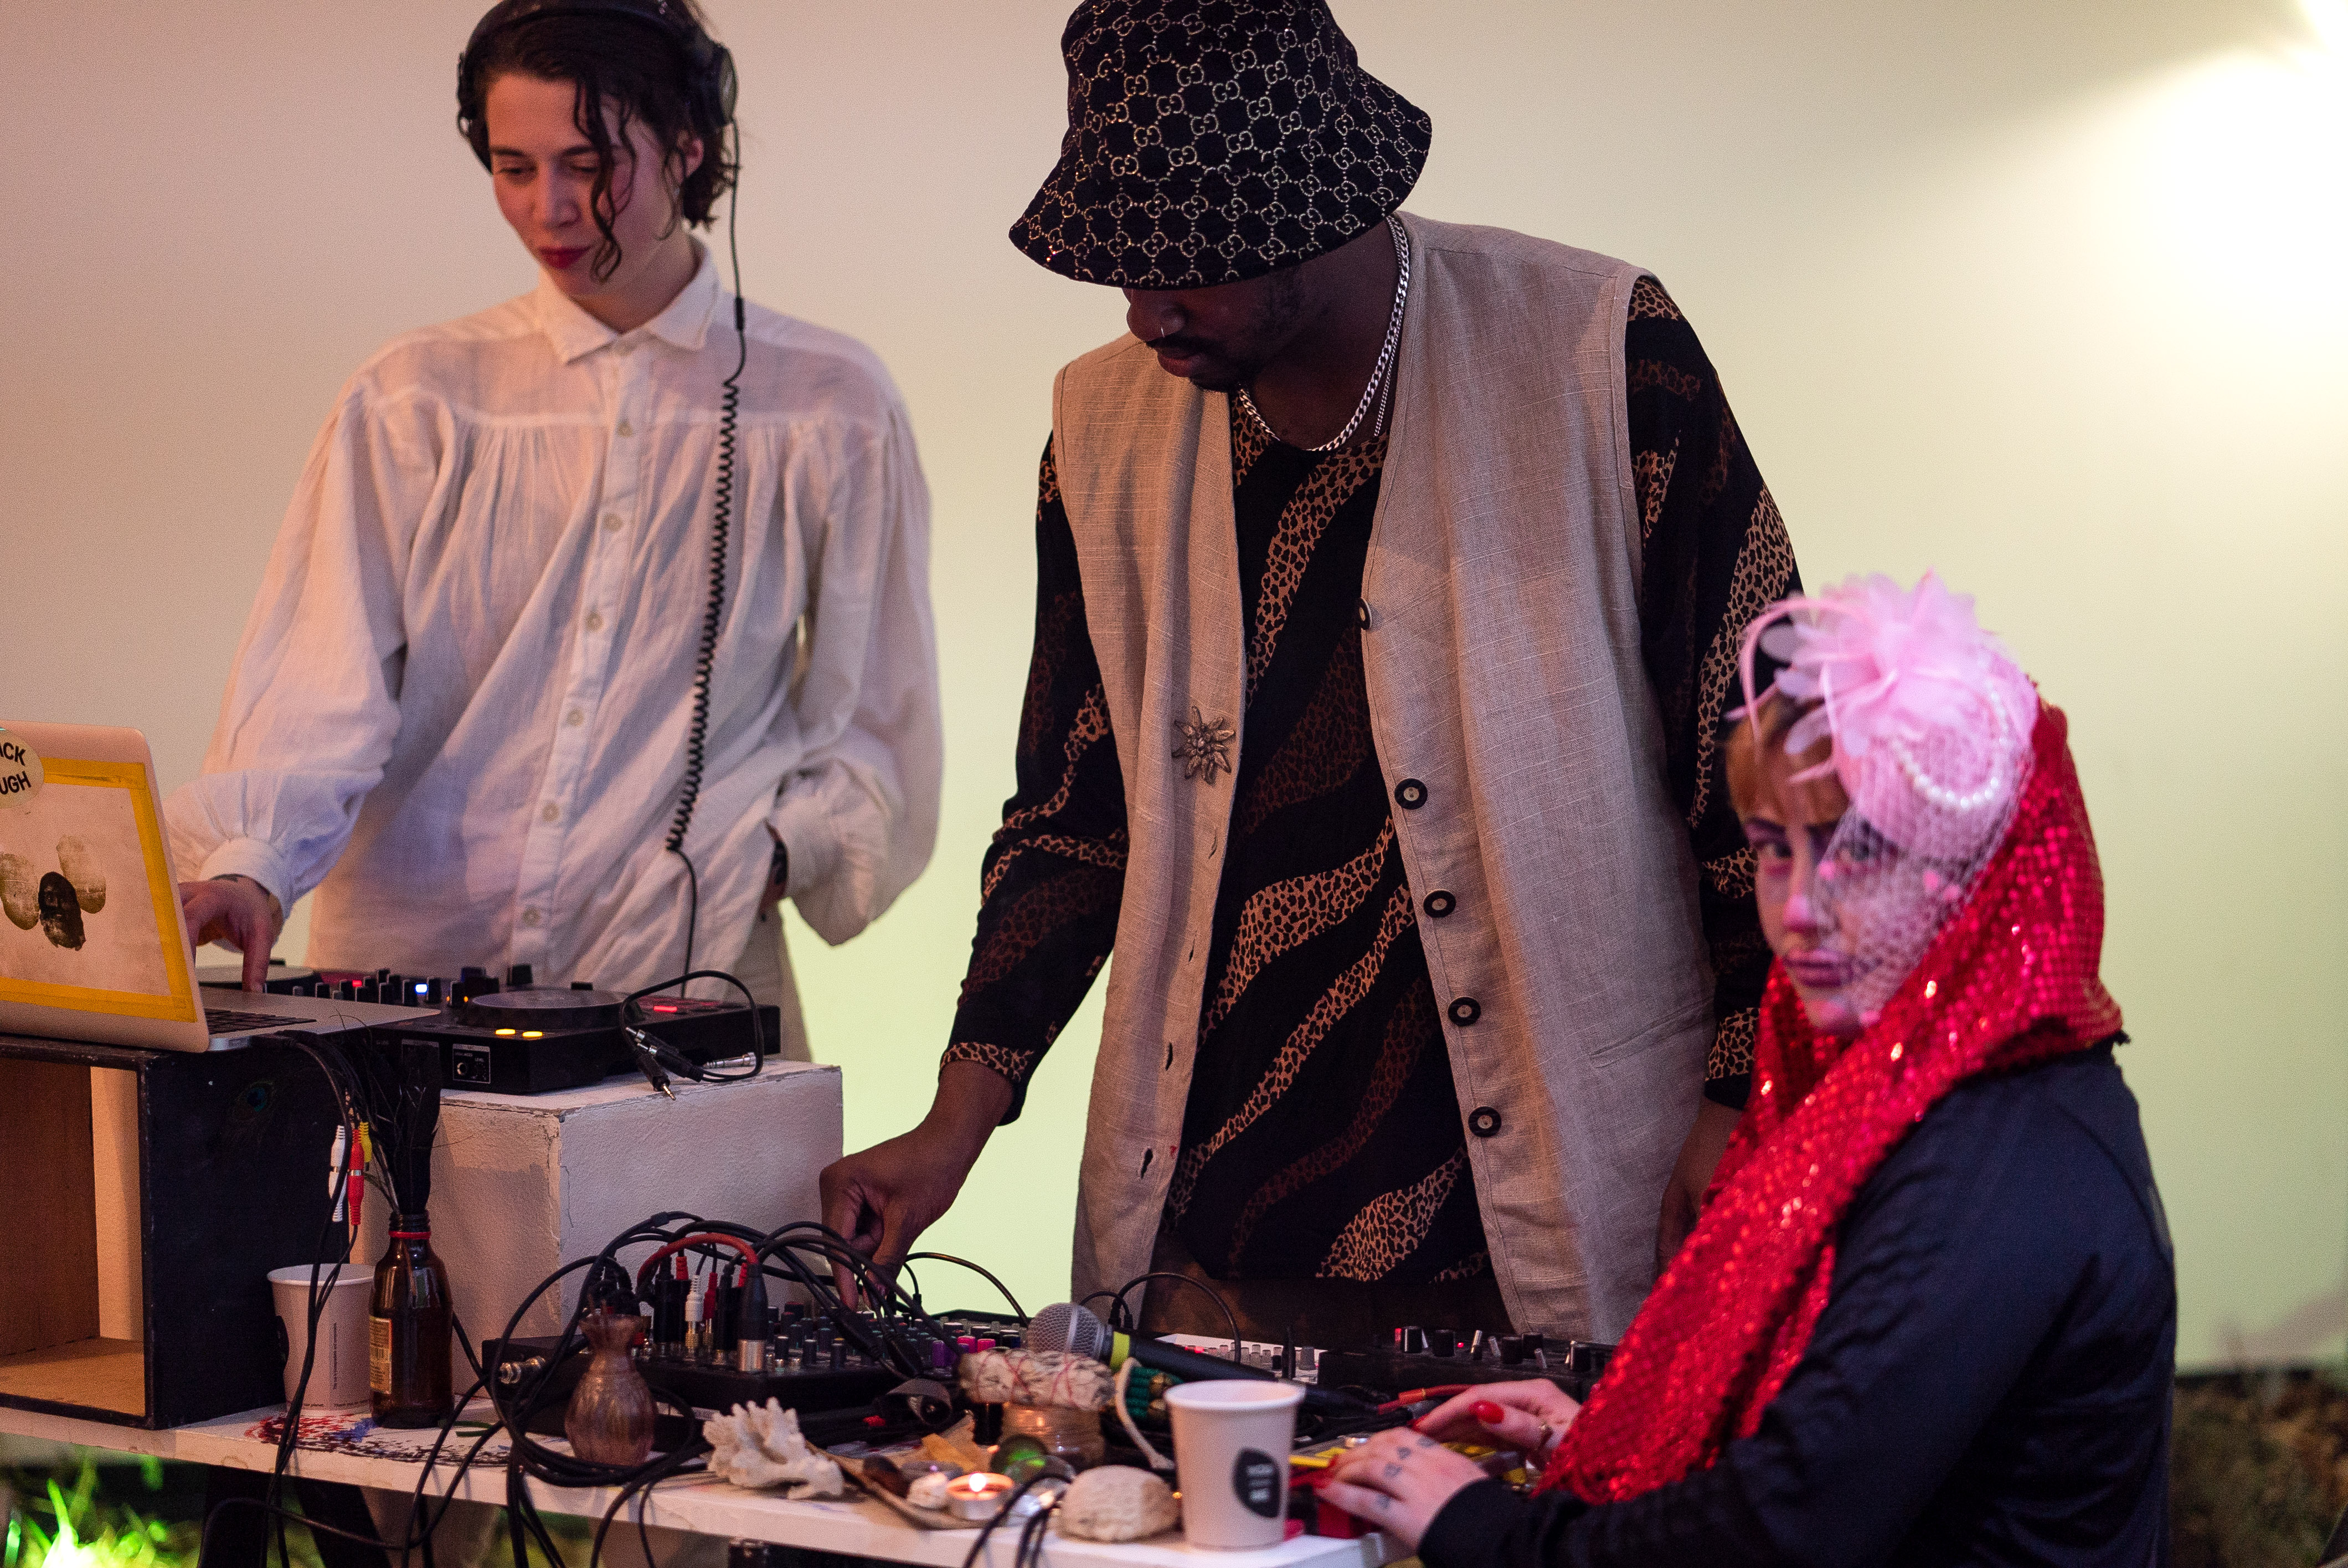 The photo is a medium shot of three people around a DJ table. The person on the far left is wearing white clothes, headphones and has one hand on a laptop. The person in the middle wears a hat, a traditional vest and operates DJ equipment. The person on the far right is the only one sitting at the table and looking towards the camera. She is wearing a large pink flower on her head and has a glittering red scarf wrapped around her neck.